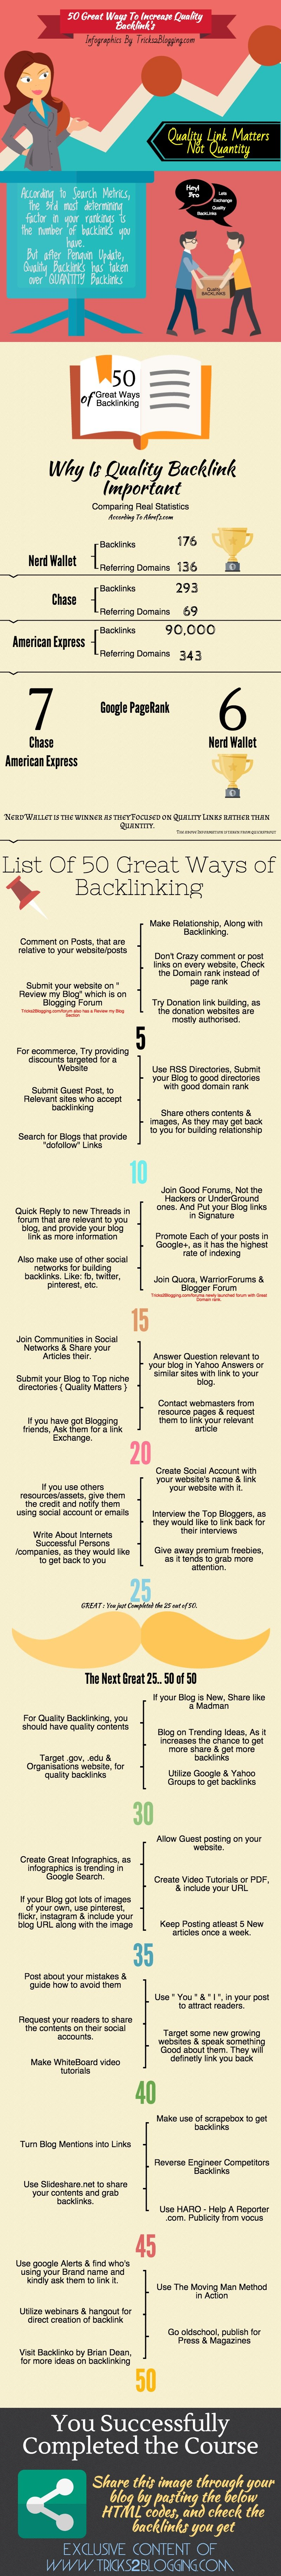 Fifty great ways to increase quality backlinks#Infographic